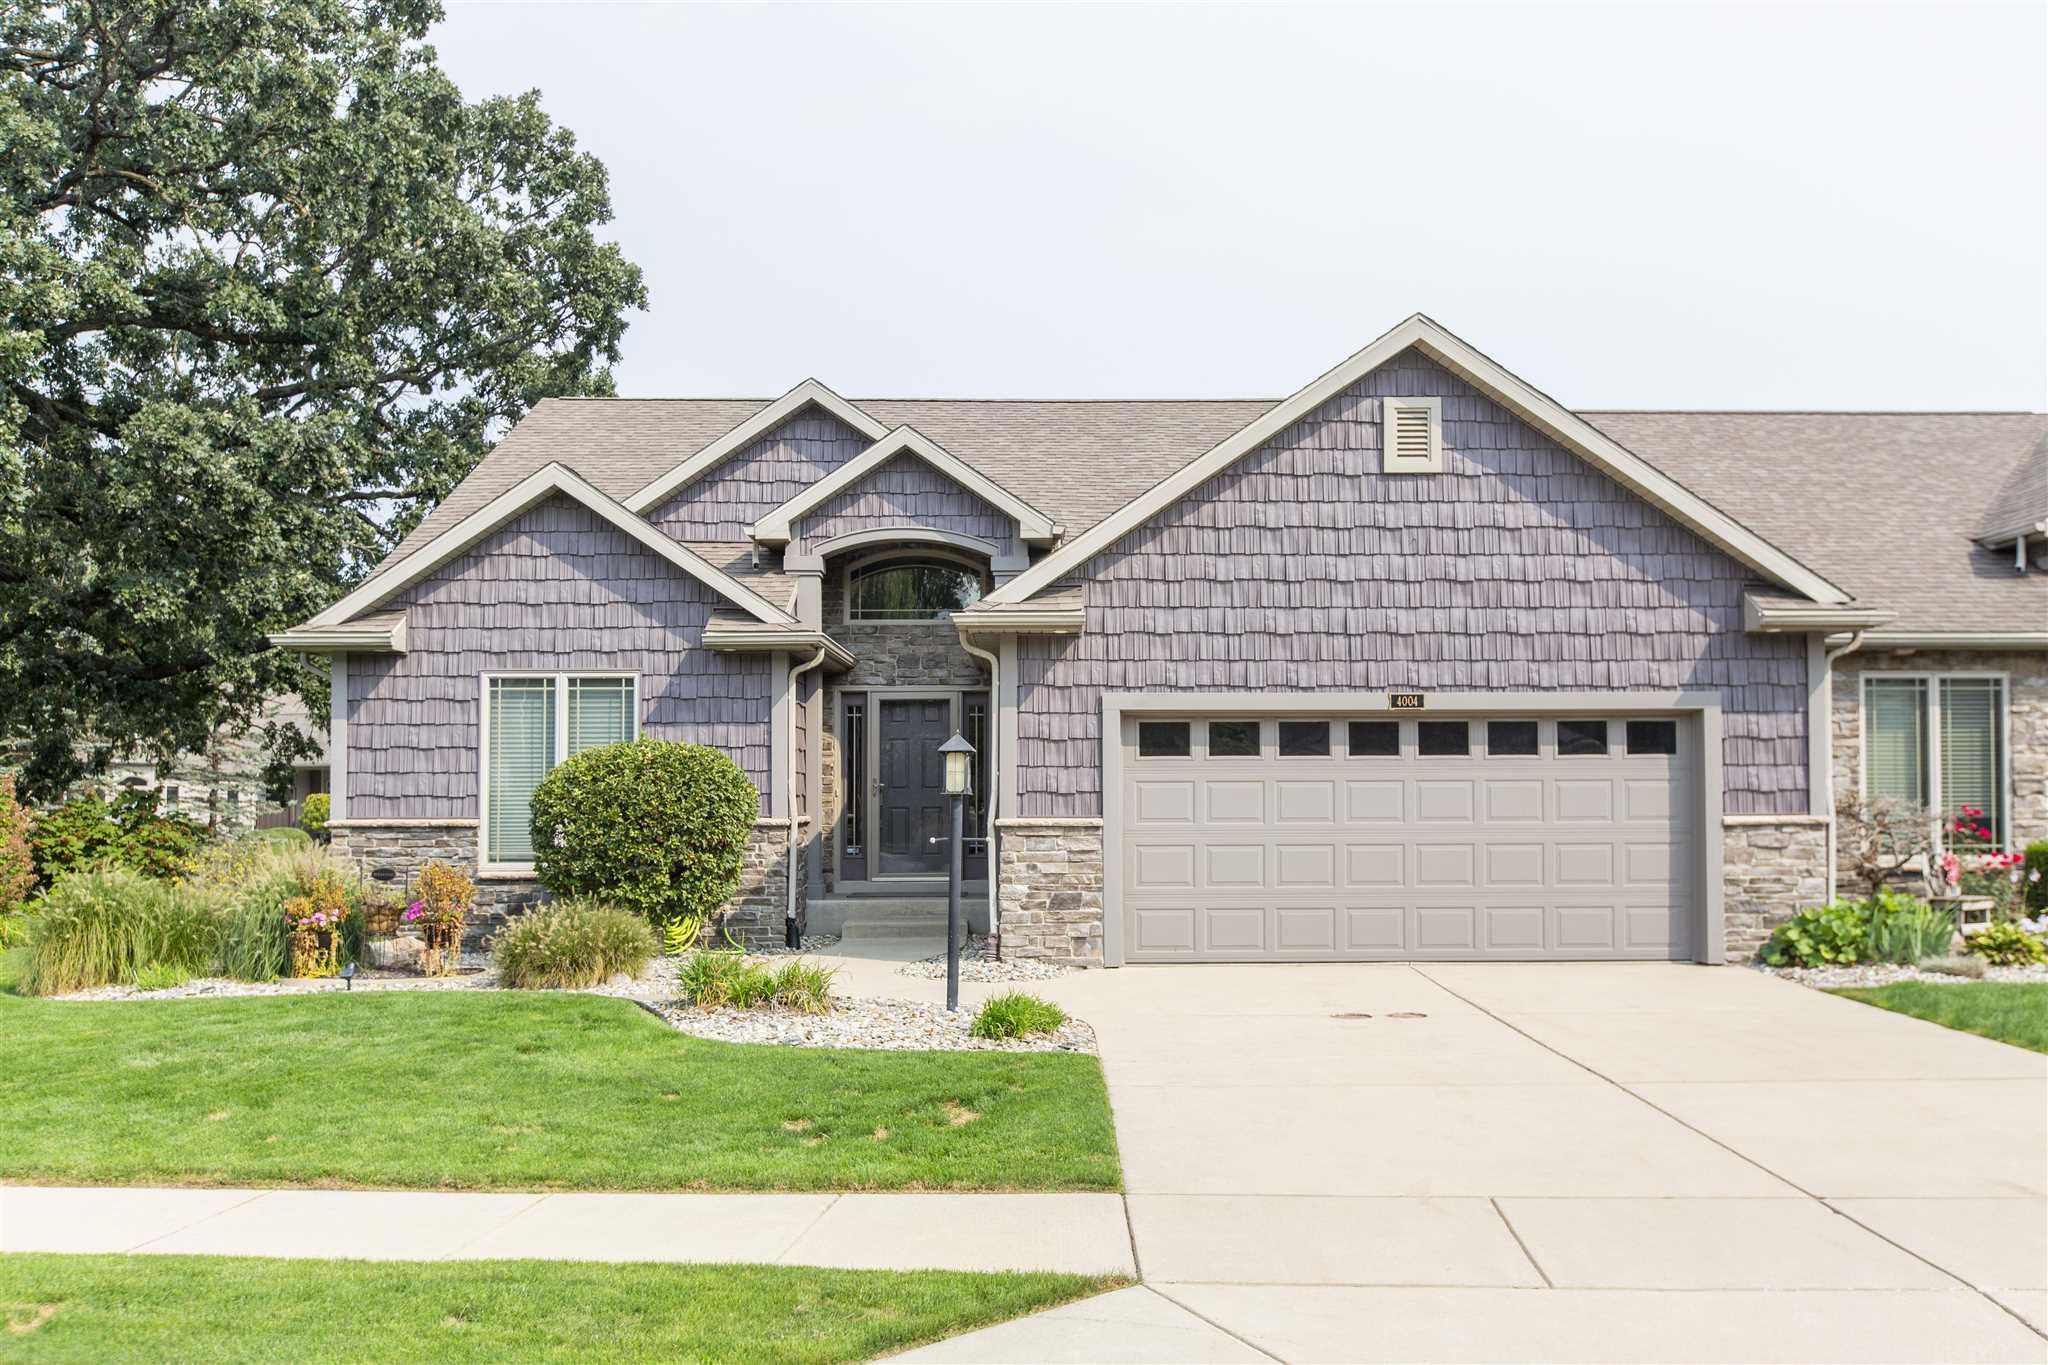 4004 Timberstone Elkhart, IN 46514